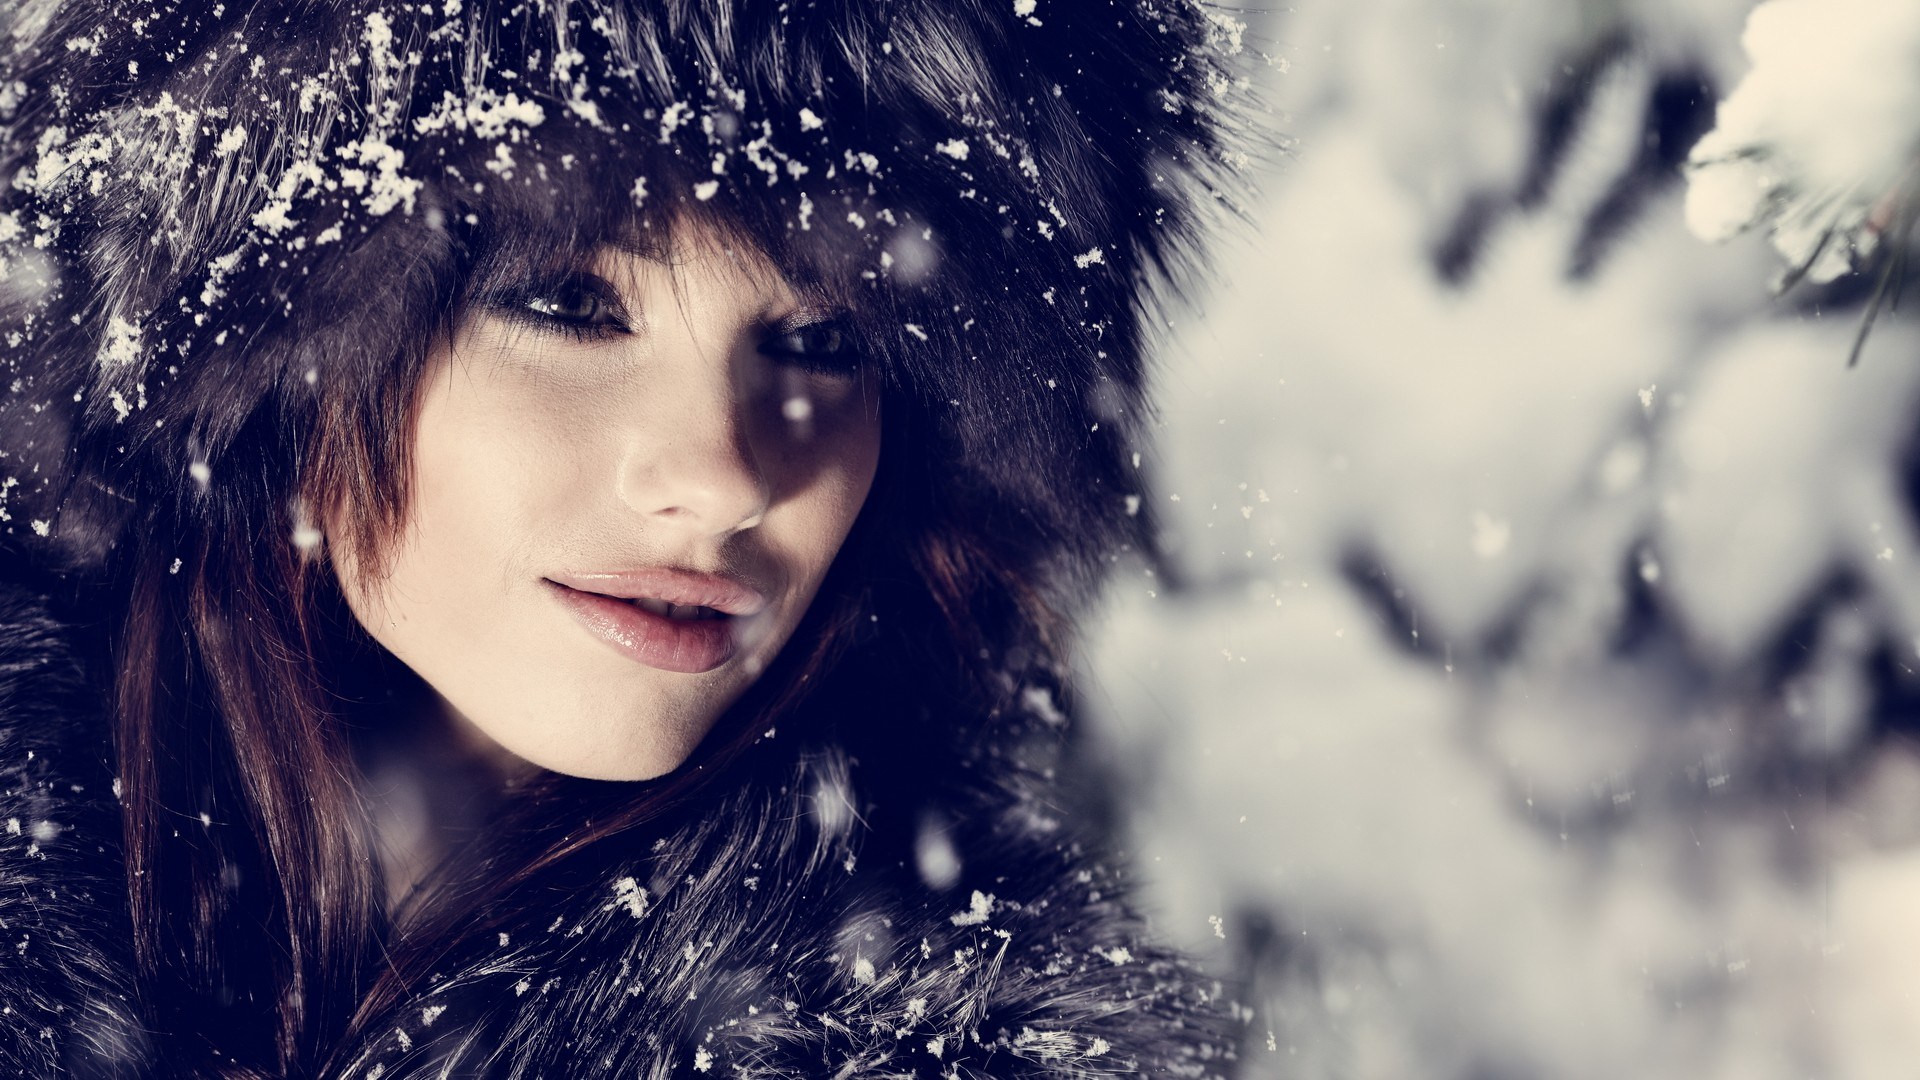 winter-fashion-beauty-model-girl-nature-snowflakes-wallpaper-1920x1080